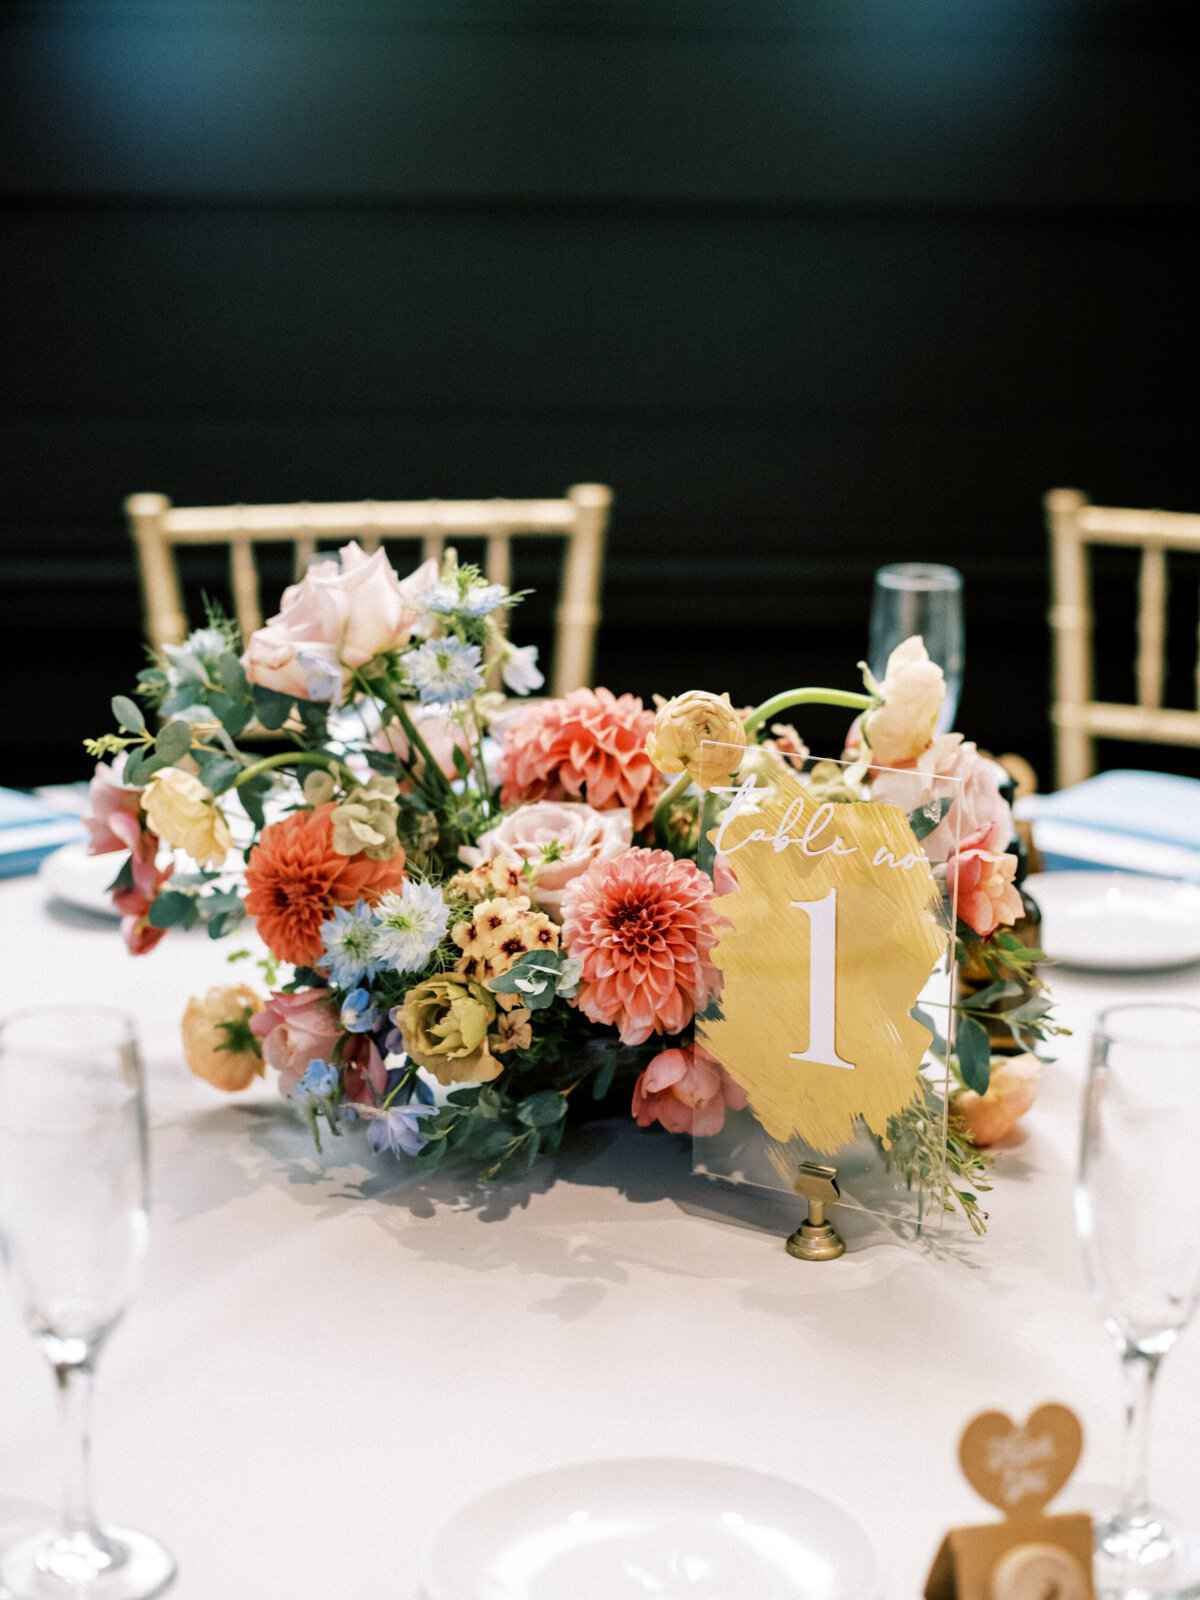 nicoleclareyphoto_alex+andy_reception-17